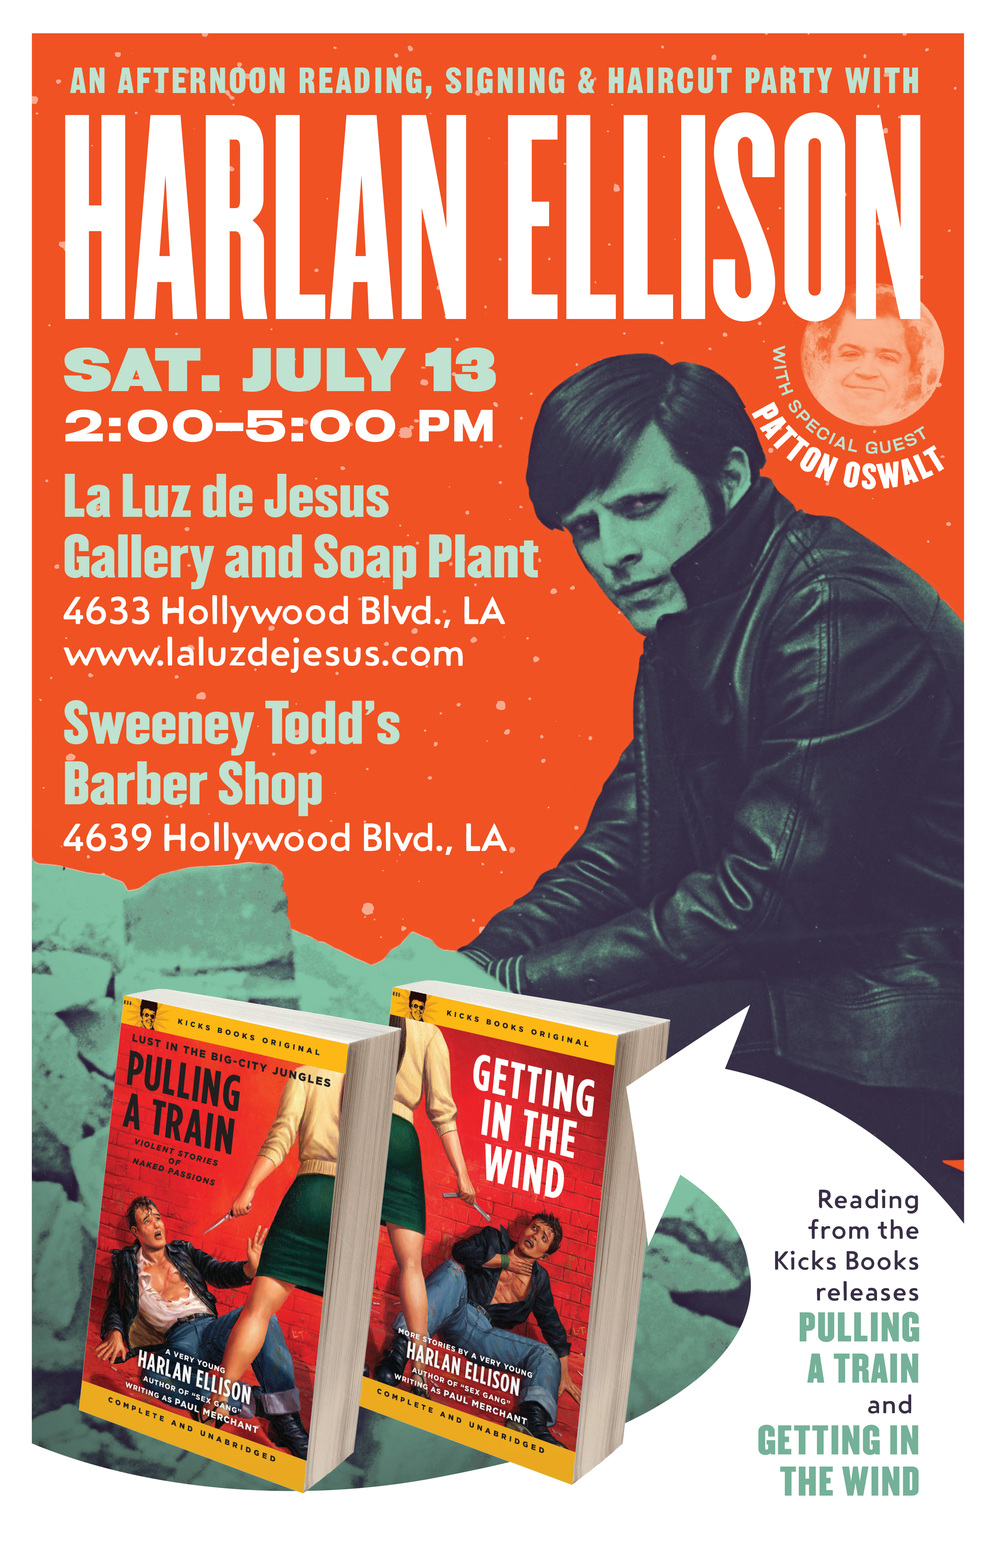 Harlan Ellison reading poster